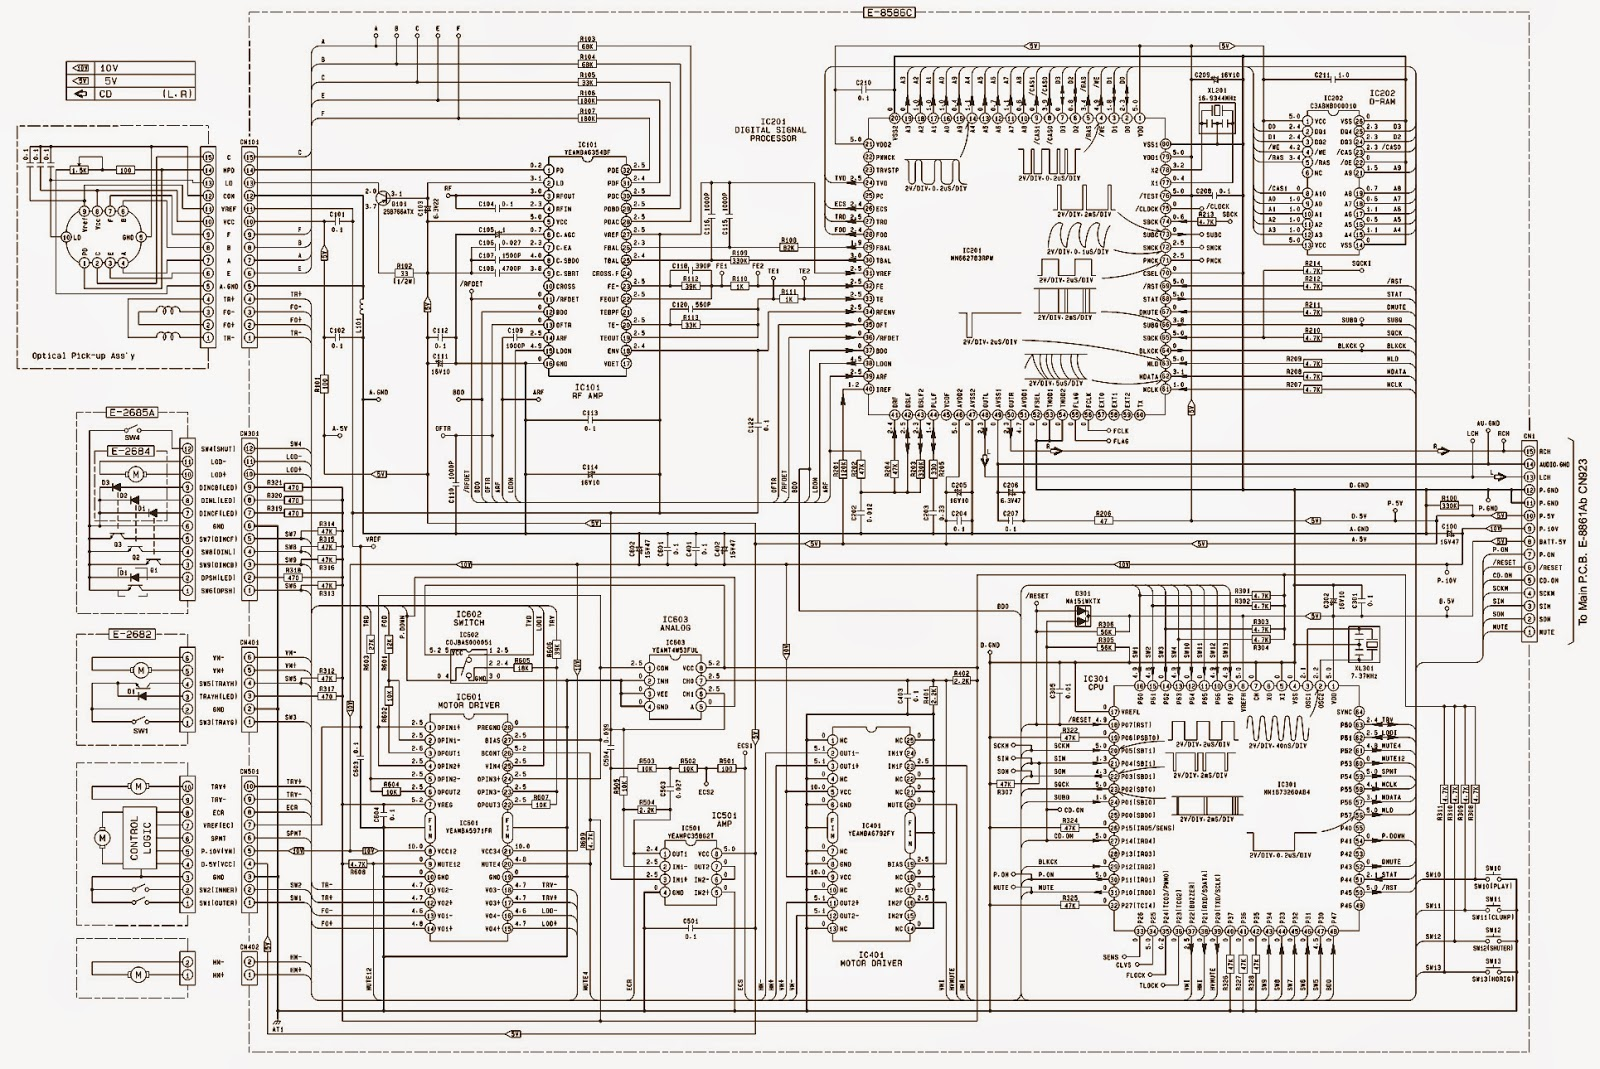 Cq eh9160a panasonic car audio system alignment schematic cq eh9160a panasonic car audio system alignment schematic ccuart